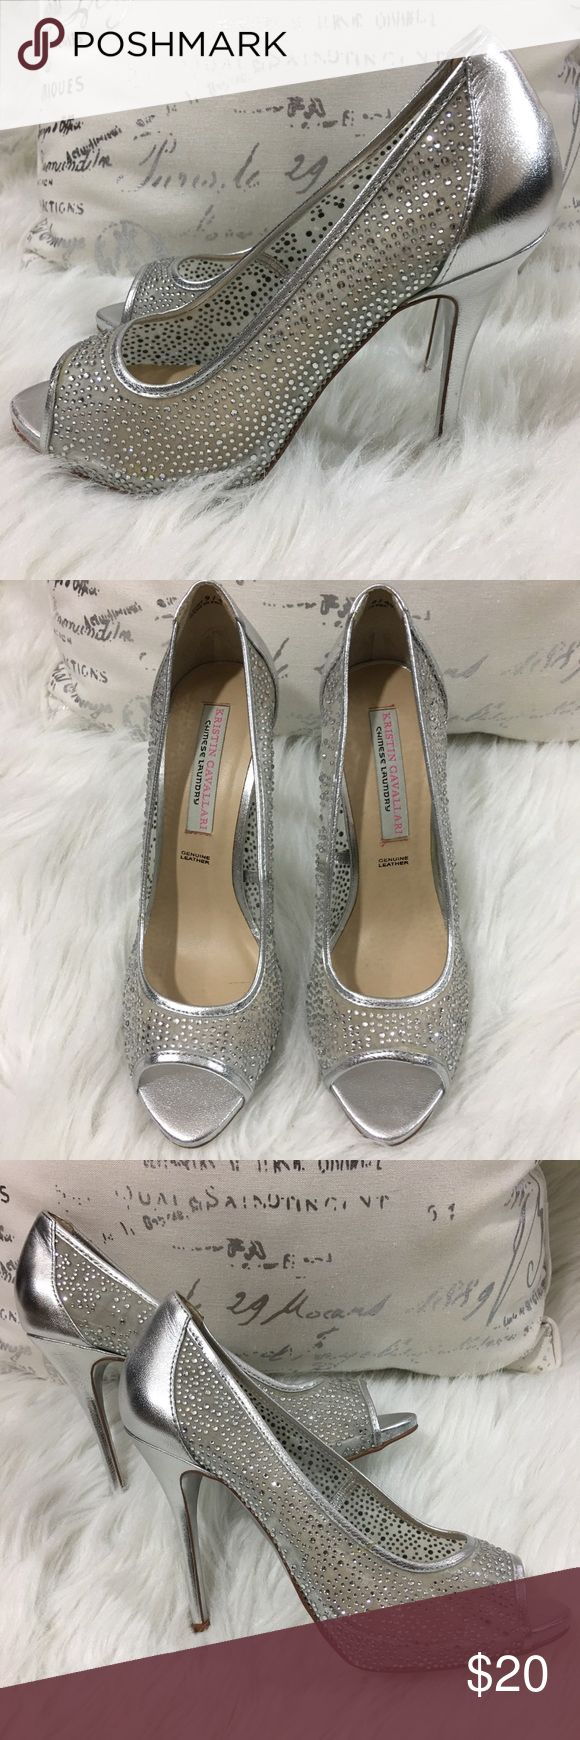 "Chinese Laundry Kristin Cavallari Silver Heels 9 Chinese Laundry Kristin Cavallari Silver Rhinestone Heels  Size 9 Heel height is 4 3/4"" Condition: See Photos Chinese Laundry Shoes Heels"